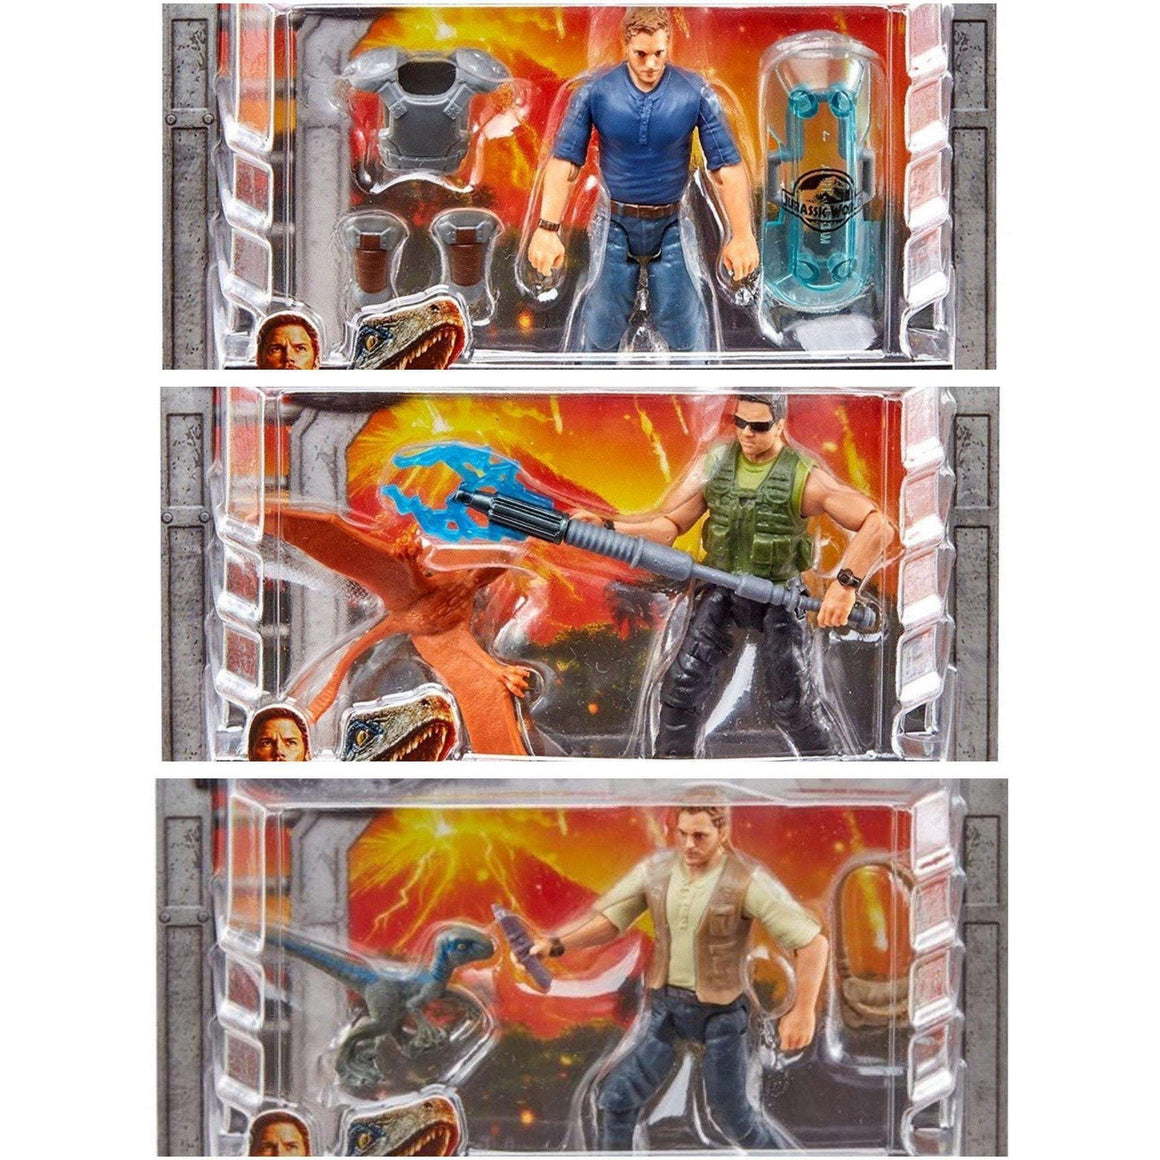 Jurassic World Fallen Kingdom Dinosaur Action Figures - Set of 3